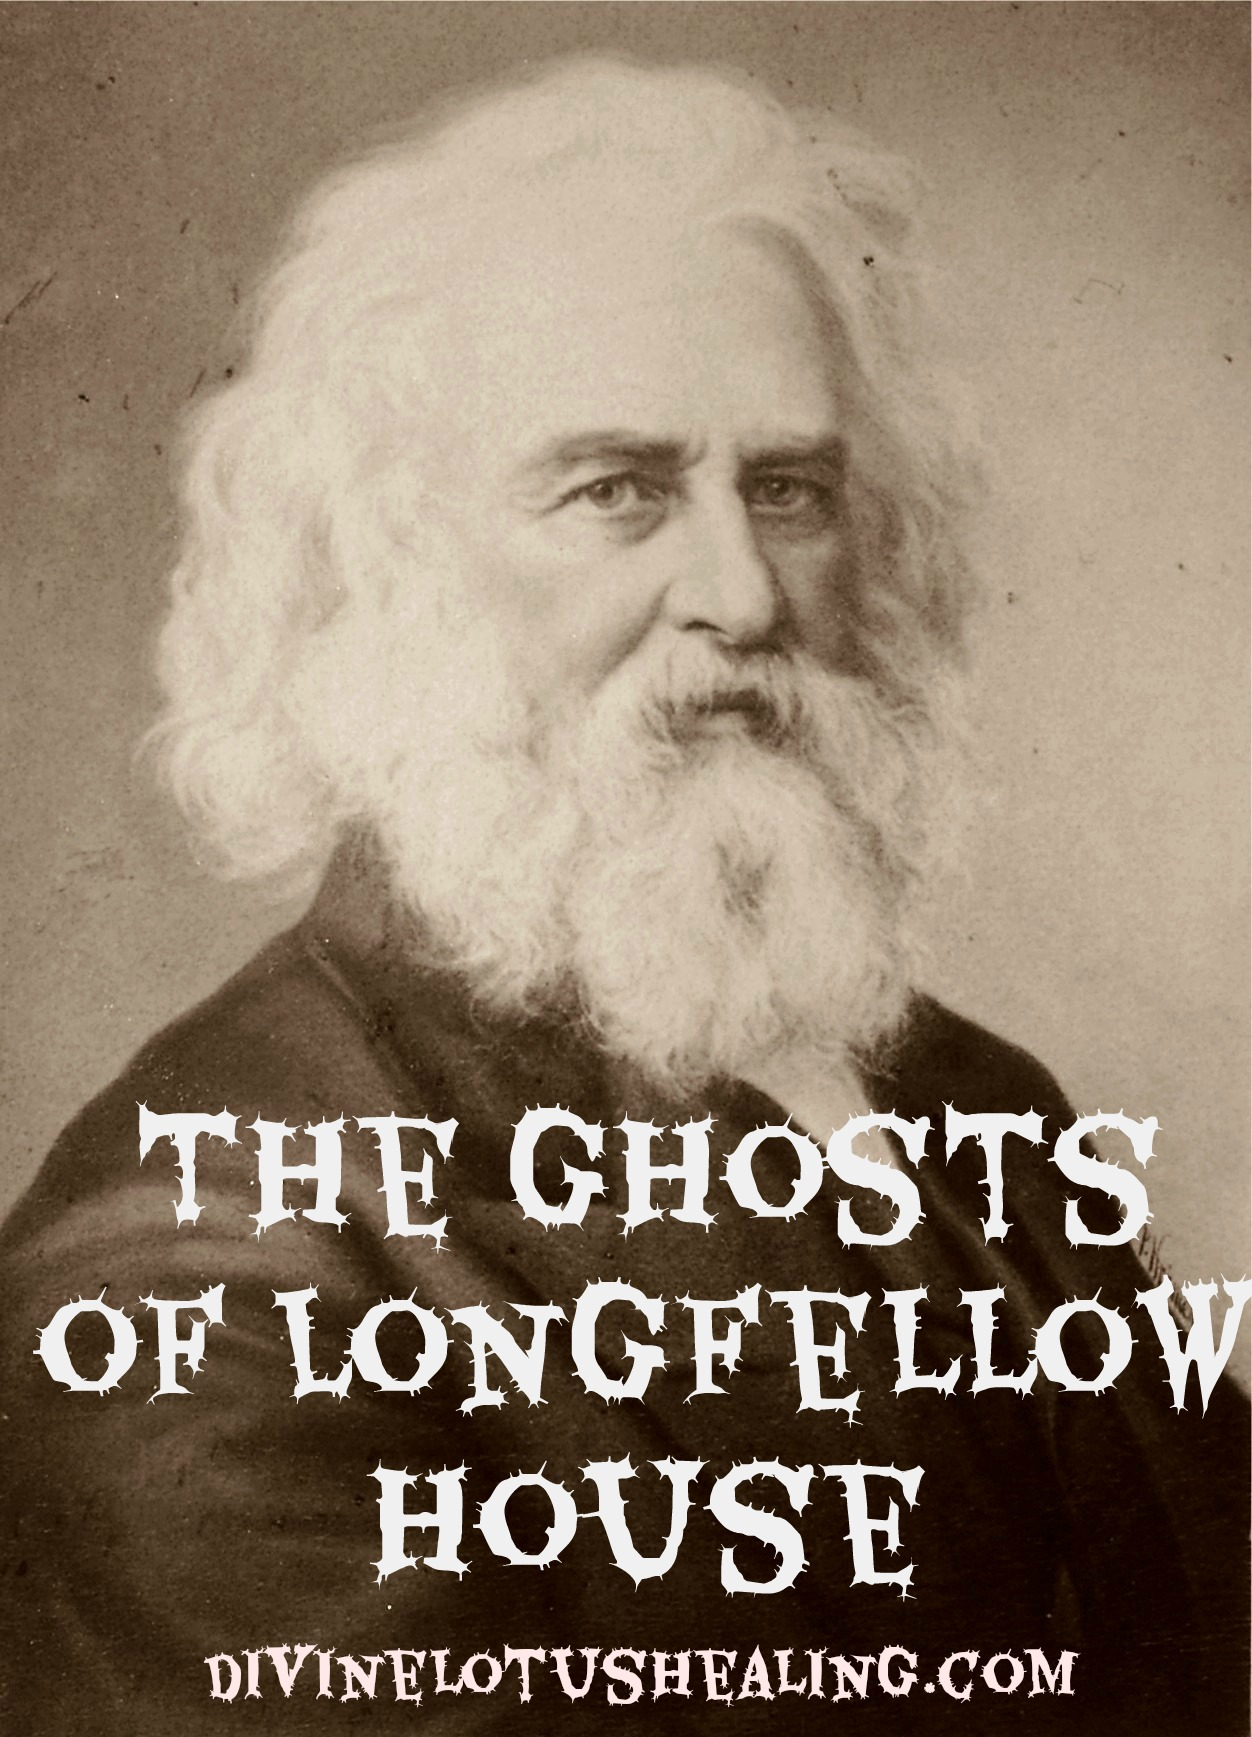 Divine Lotus Healing | The Ghosts of Longfellow House